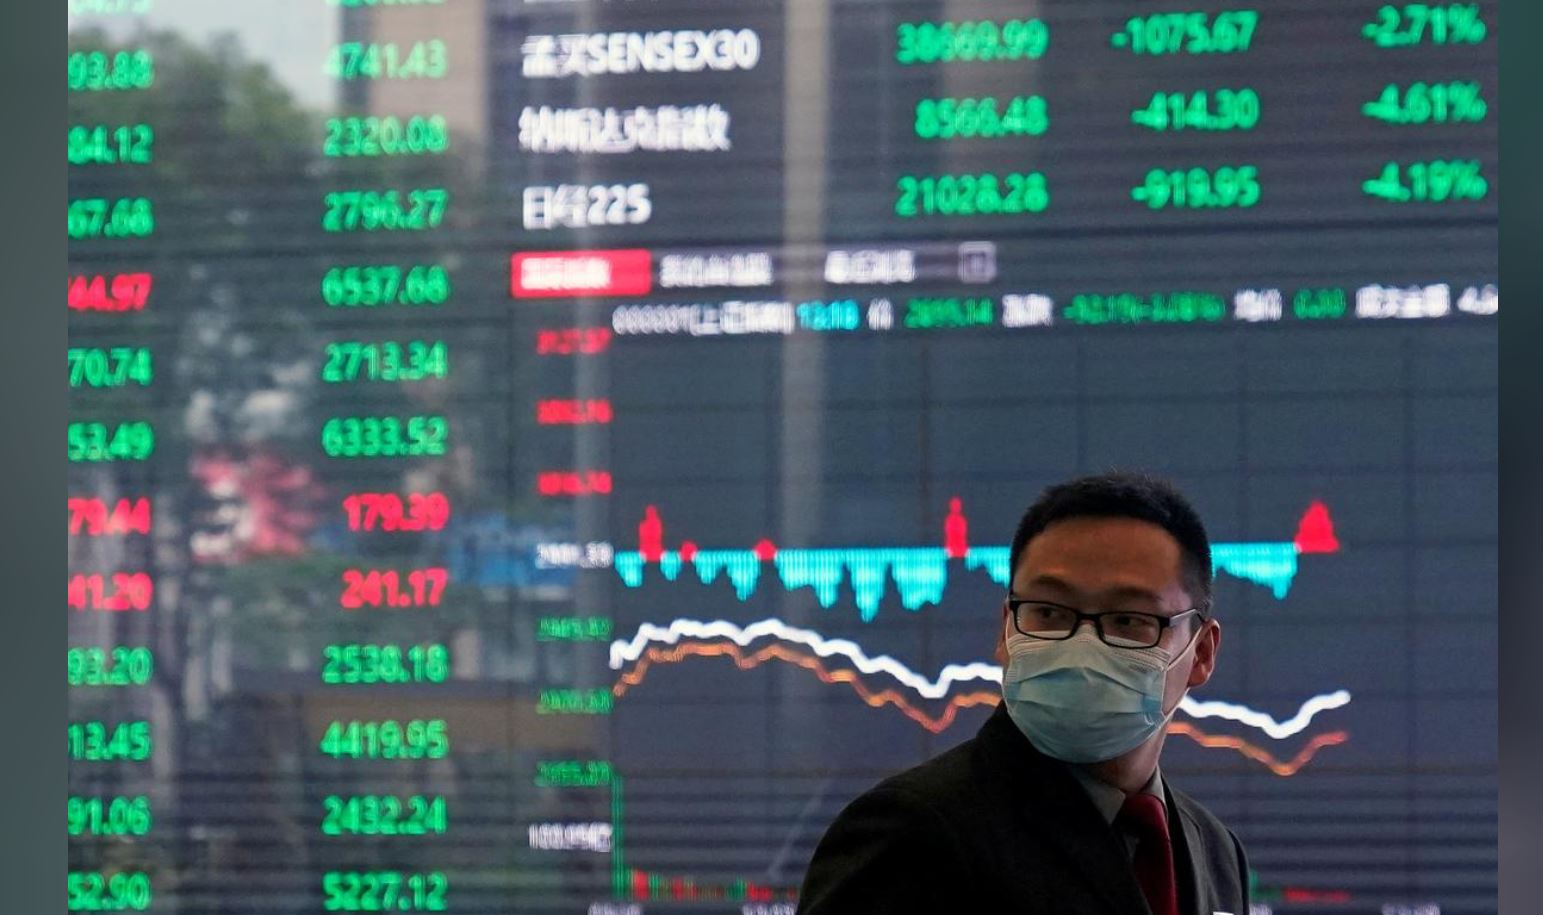 Global Markets: Shares tumble after Trump takes aim at China tech firms